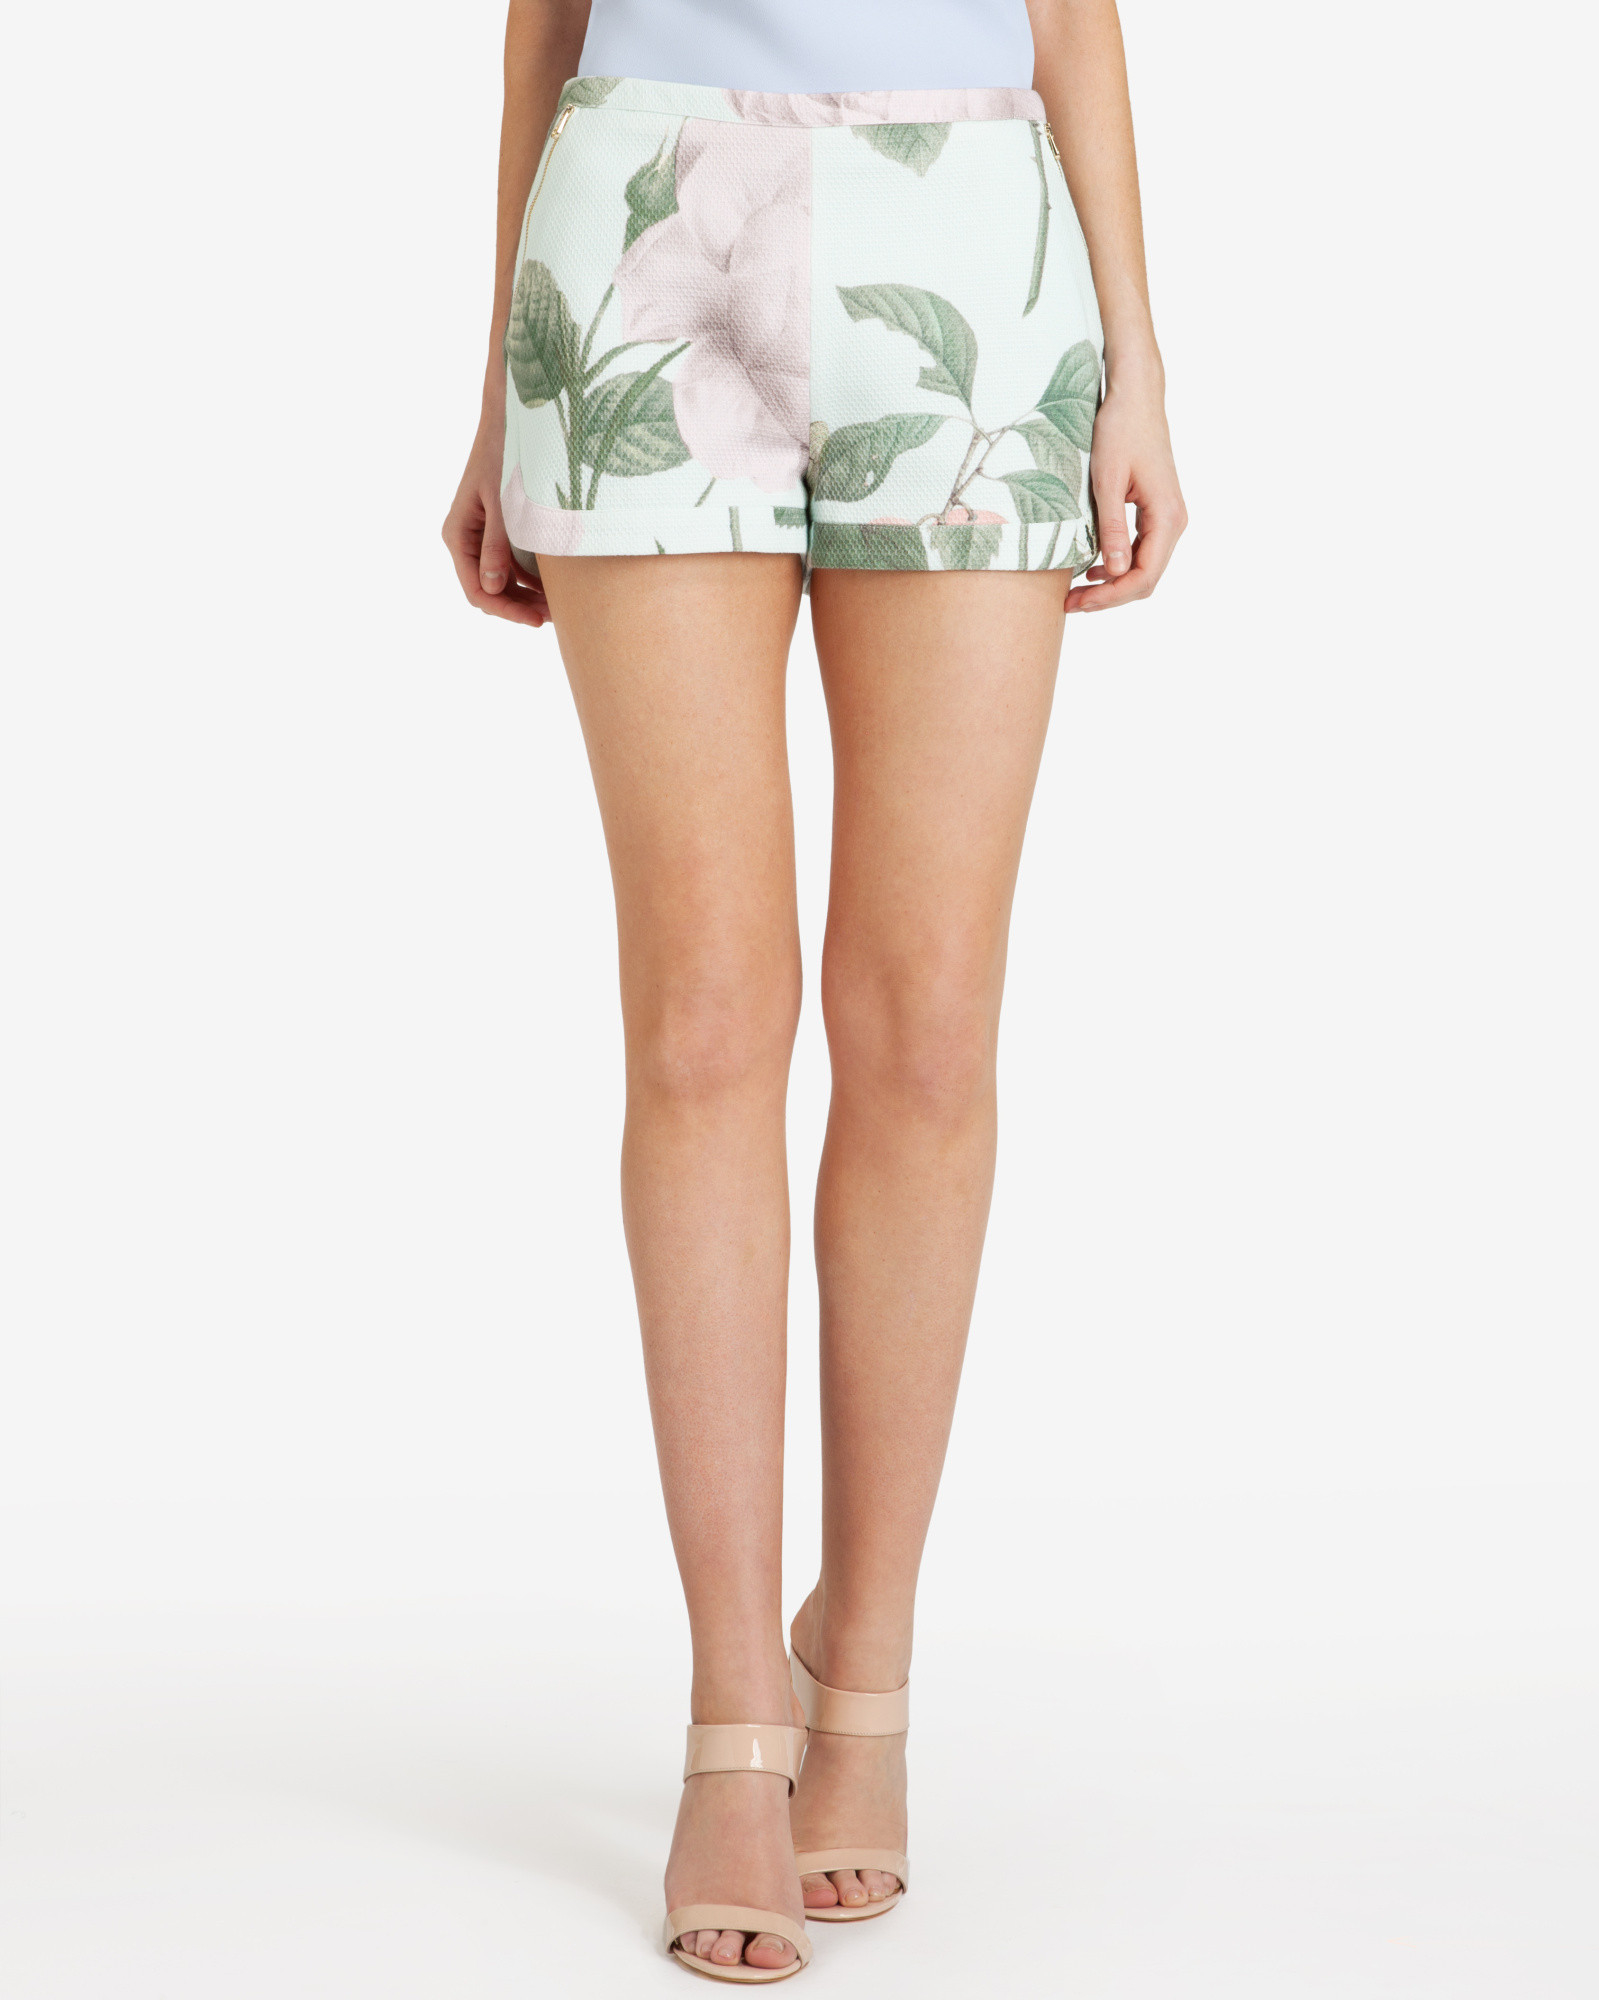 a70610683 Lyst - Ted Baker Distinguishing Rose Shorts in Green